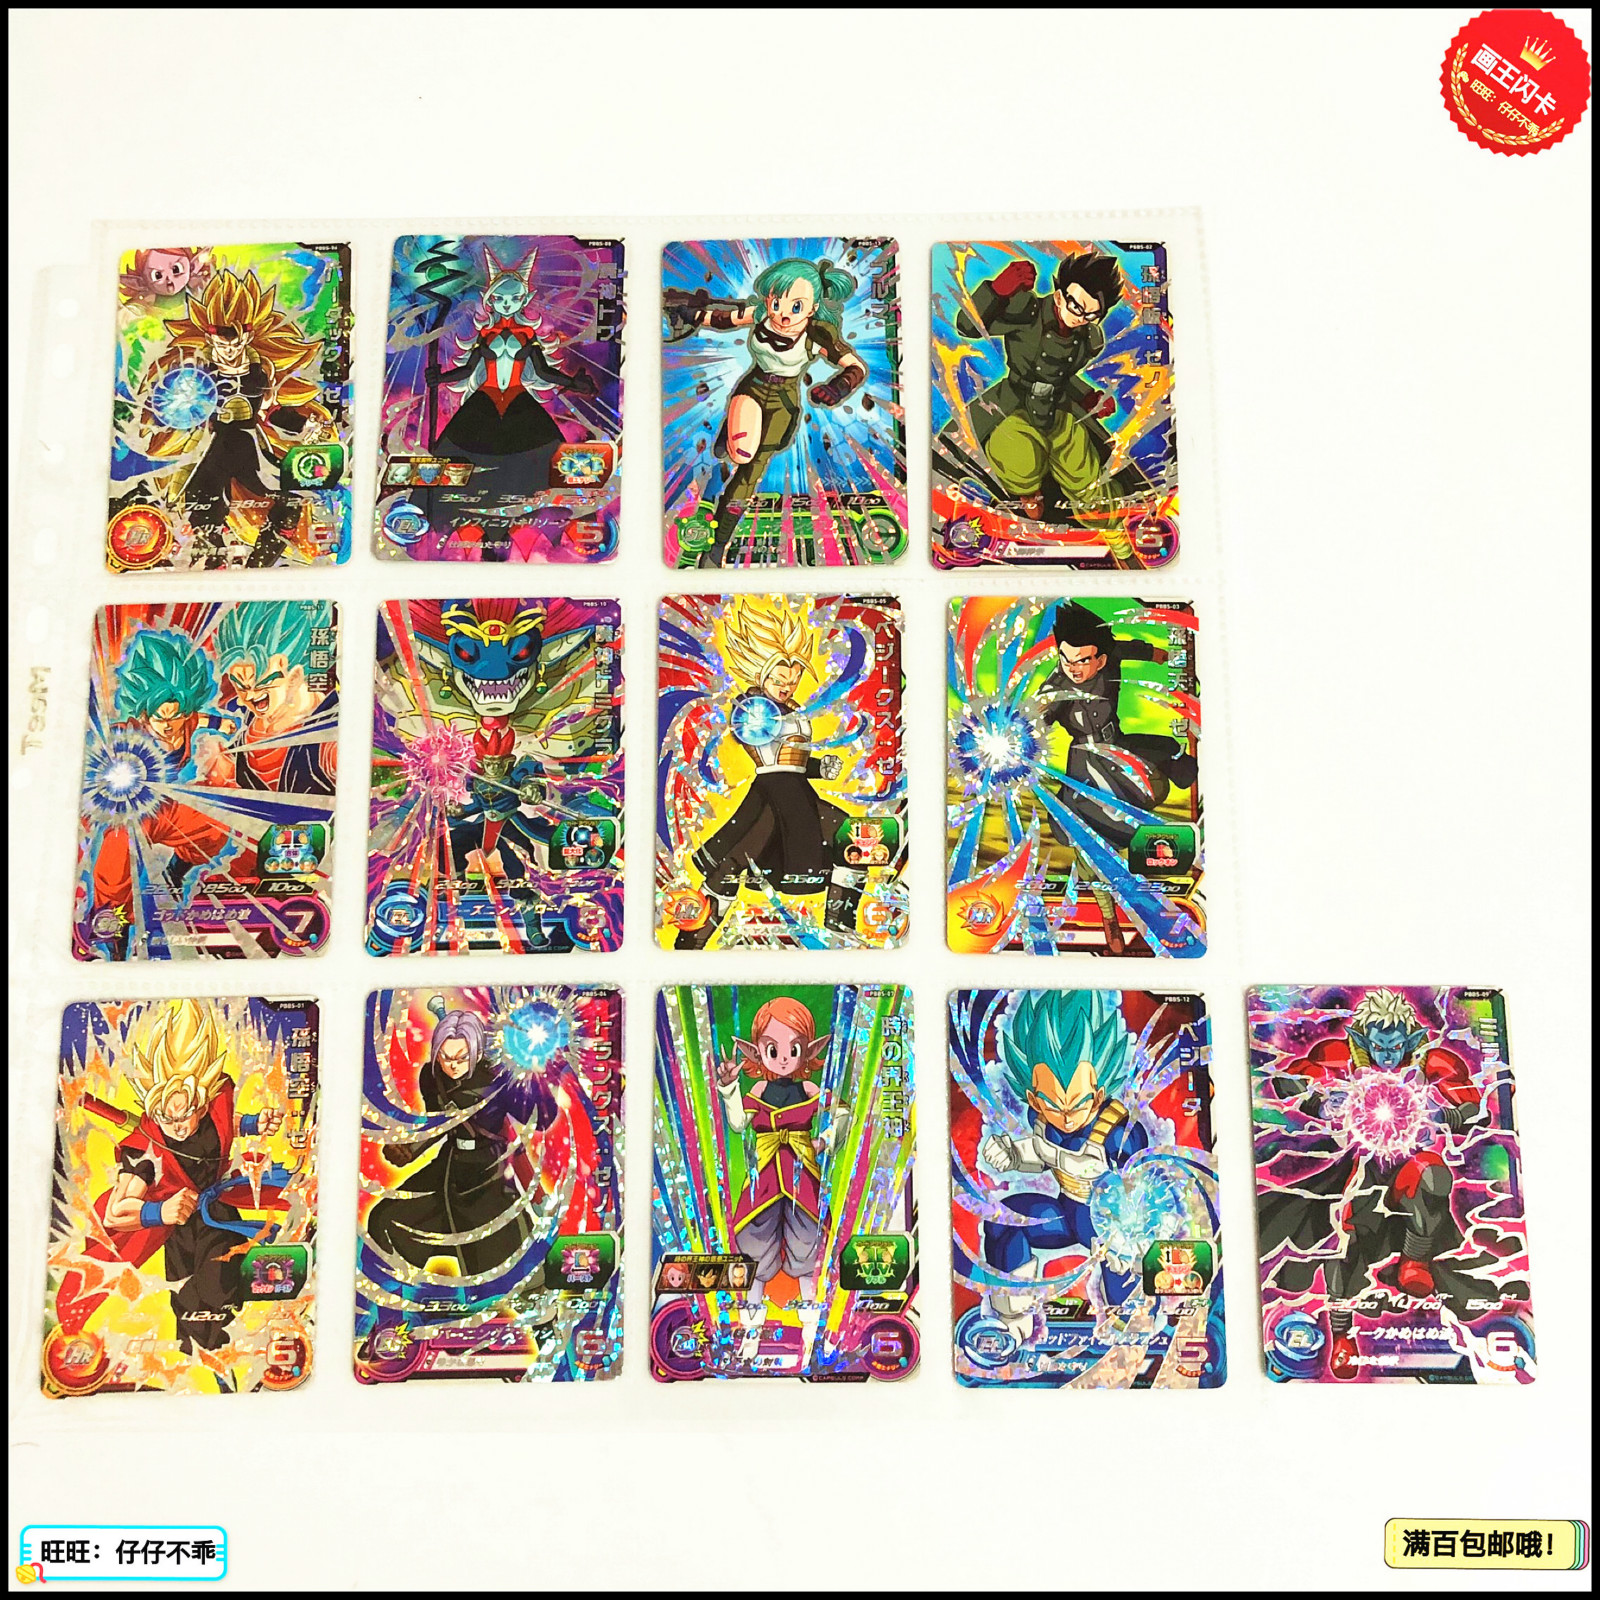 Japan Original Dragon Ball Hero Card PBBS Goku Toys Hobbies Collectibles Game Collection Anime Cards